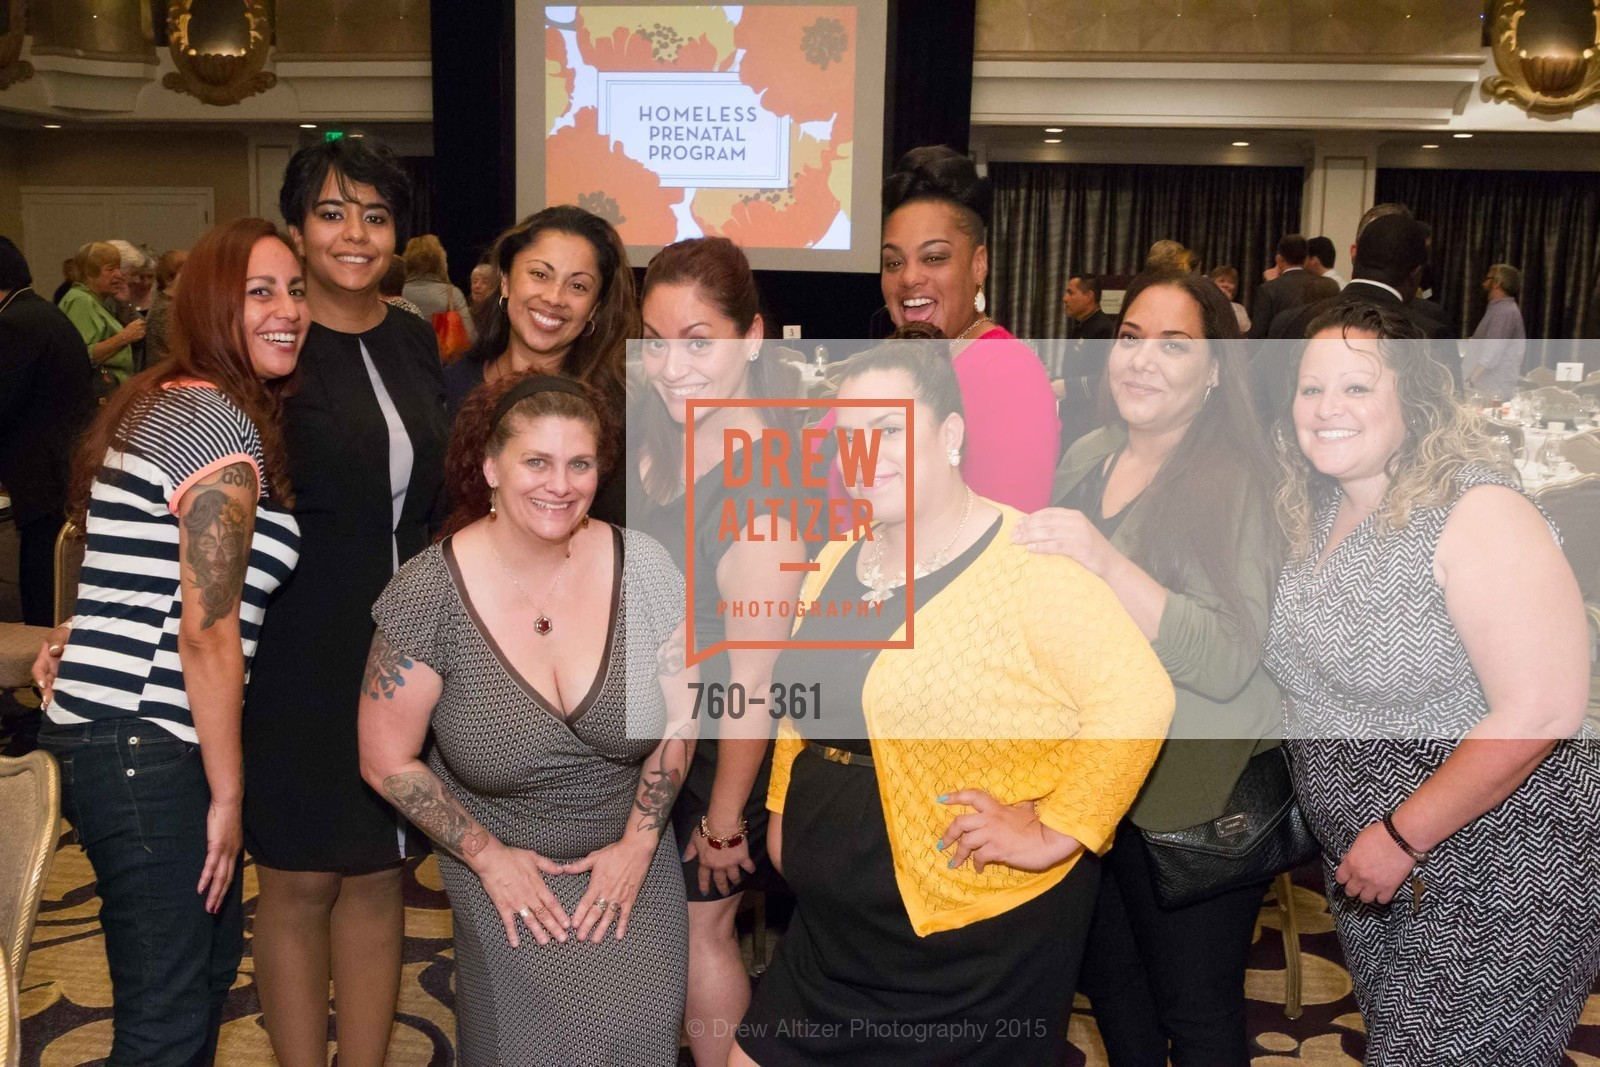 Group Photo, Homeless Prenatal Programs Annual Luncheon, Fairmont Hotel, October 9th, 2015,Drew Altizer, Drew Altizer Photography, full-service event agency, private events, San Francisco photographer, photographer California